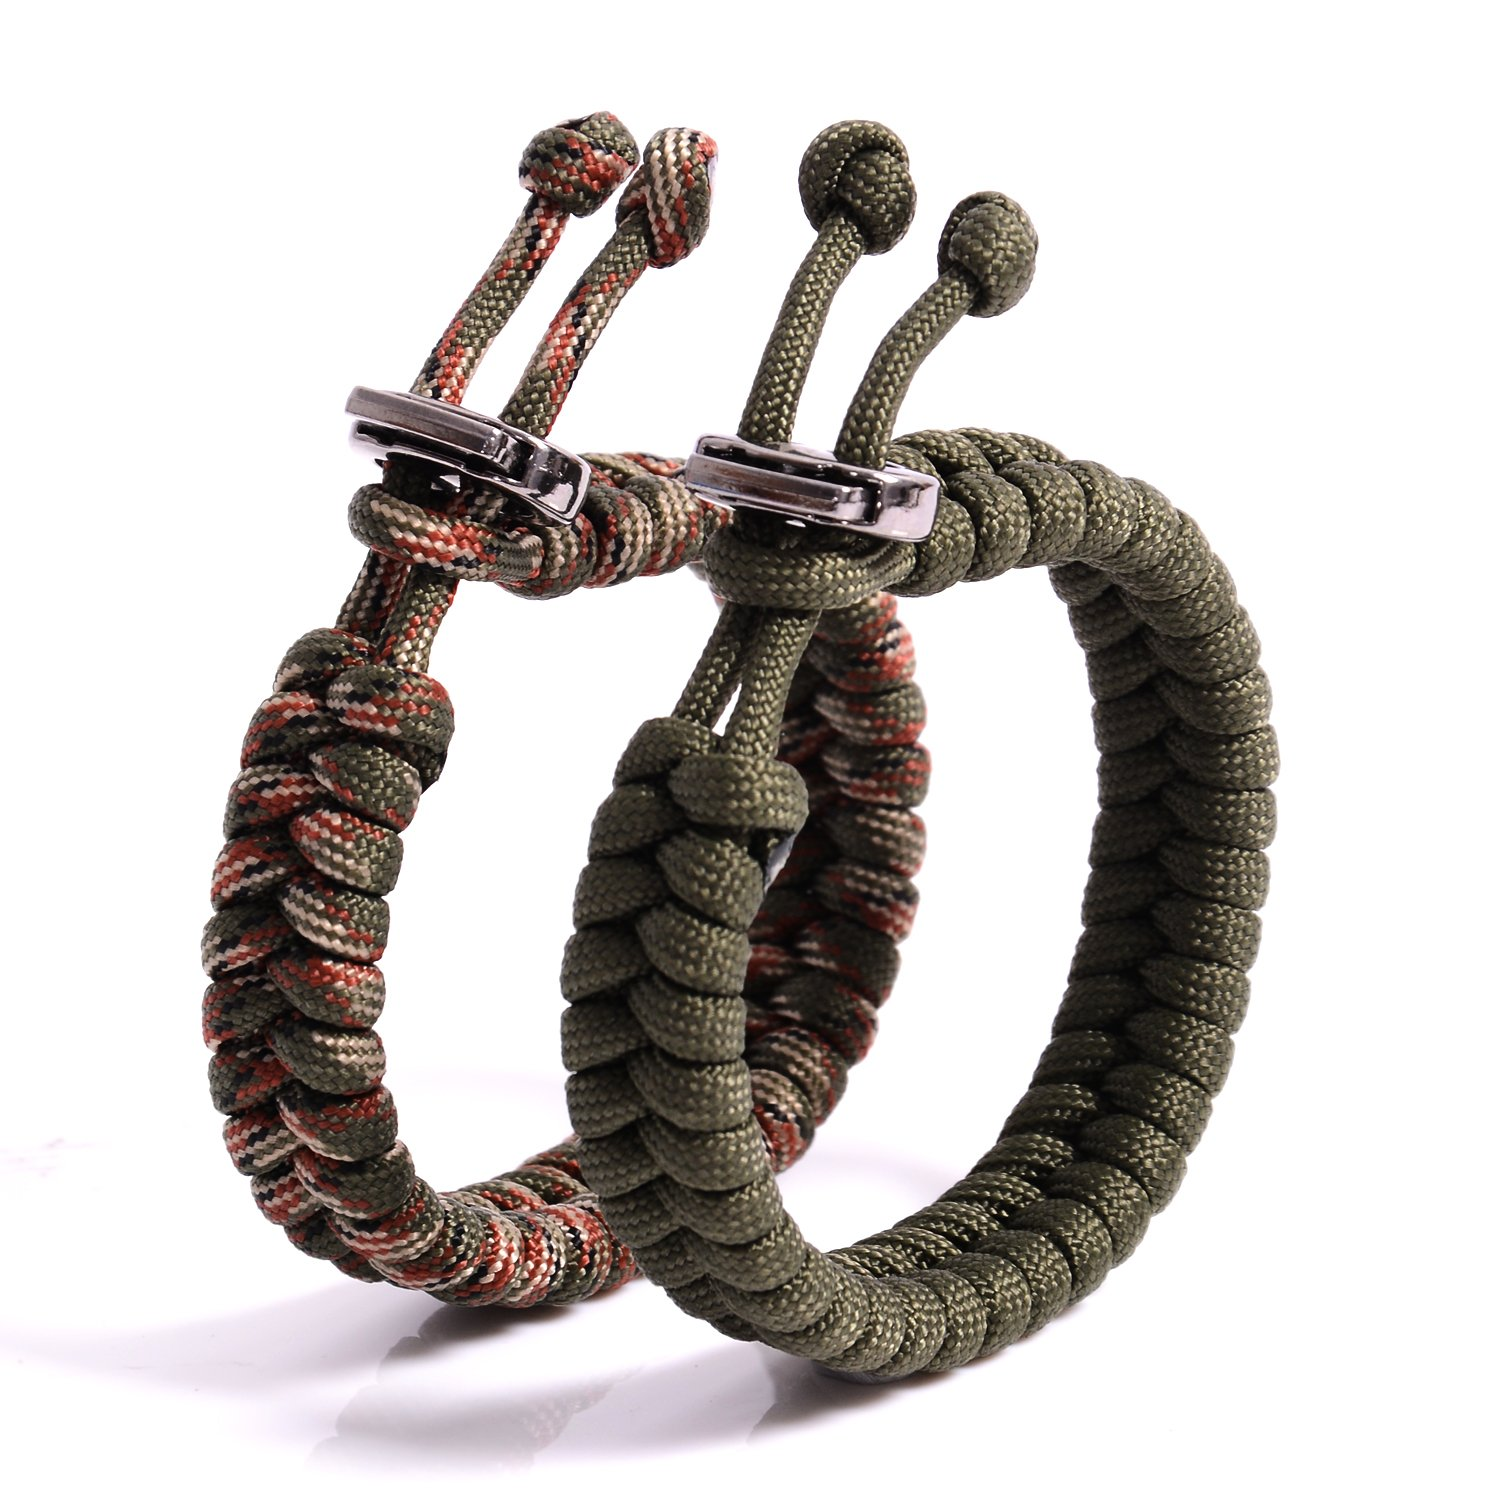 """The Friendly Swede Fish Tail Paracord Survival Bracelets with Metal Clasp Adjustable Size Fits 7"""" 8.5"""" 18 22 cm Wrists 2 Pack"""